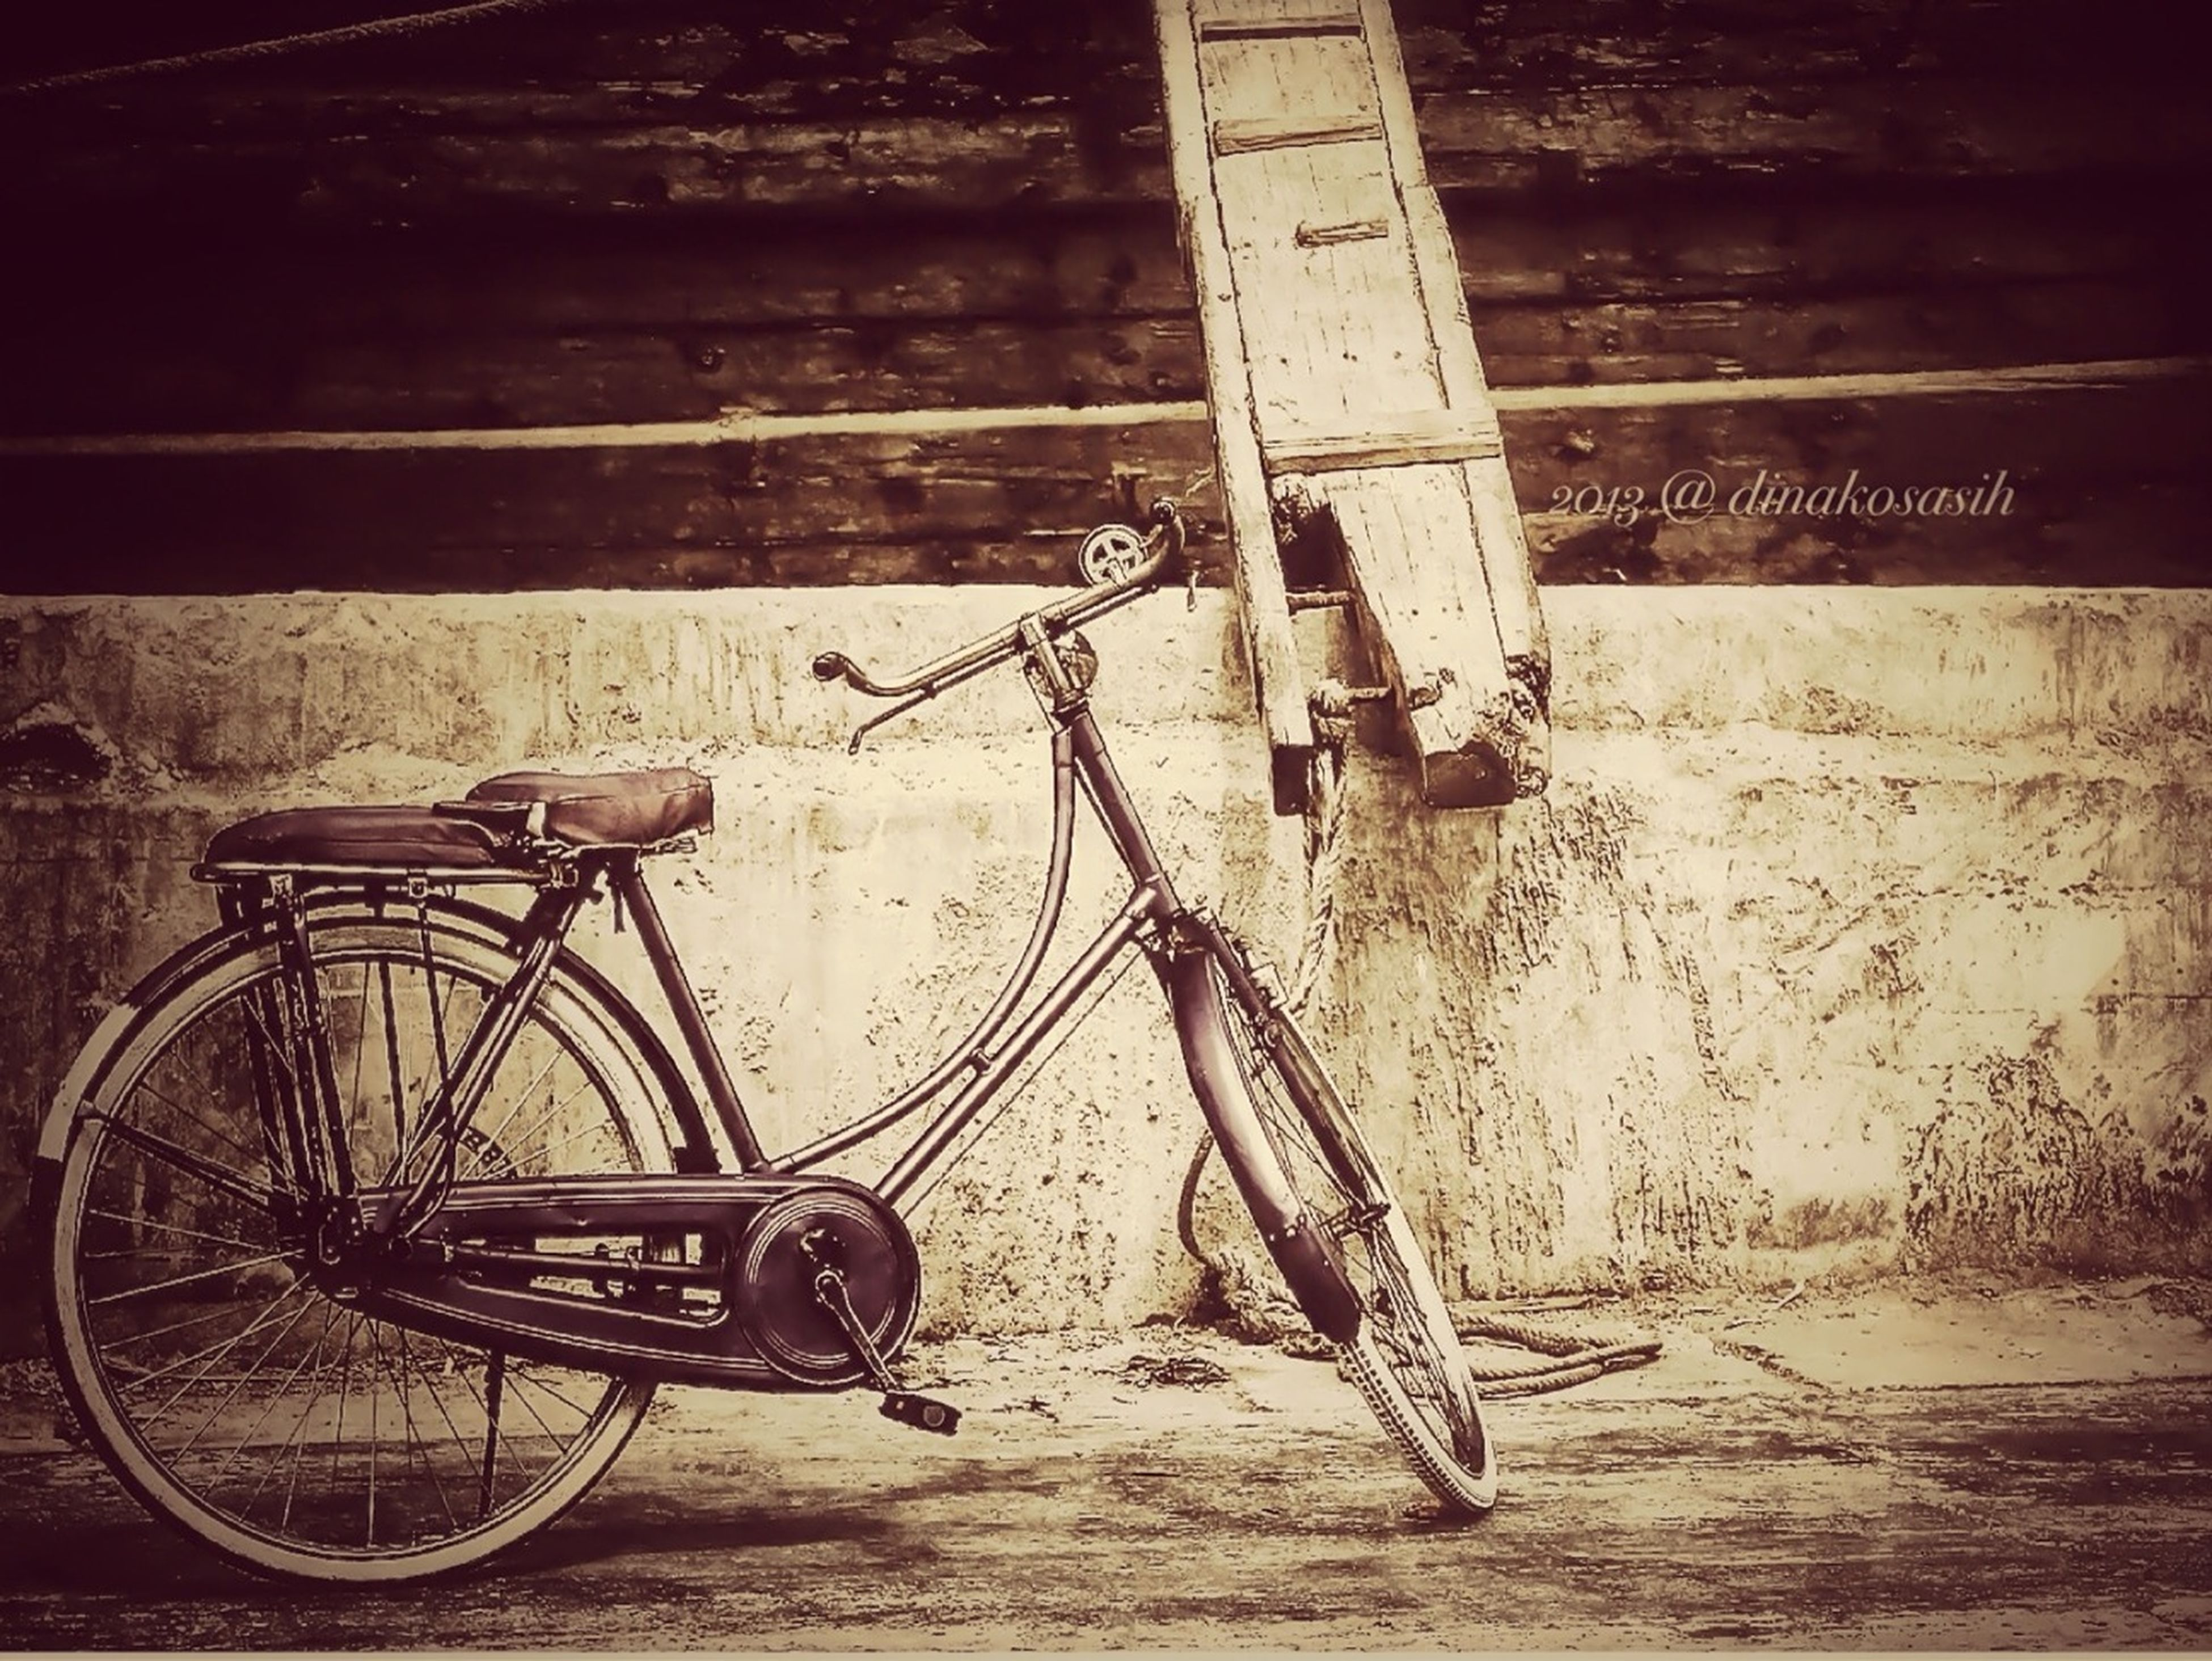 bicycle, transportation, mode of transport, stationary, wall - building feature, parking, land vehicle, parked, metal, built structure, wheel, absence, architecture, no people, day, railing, outdoors, wall, leaning, sidewalk